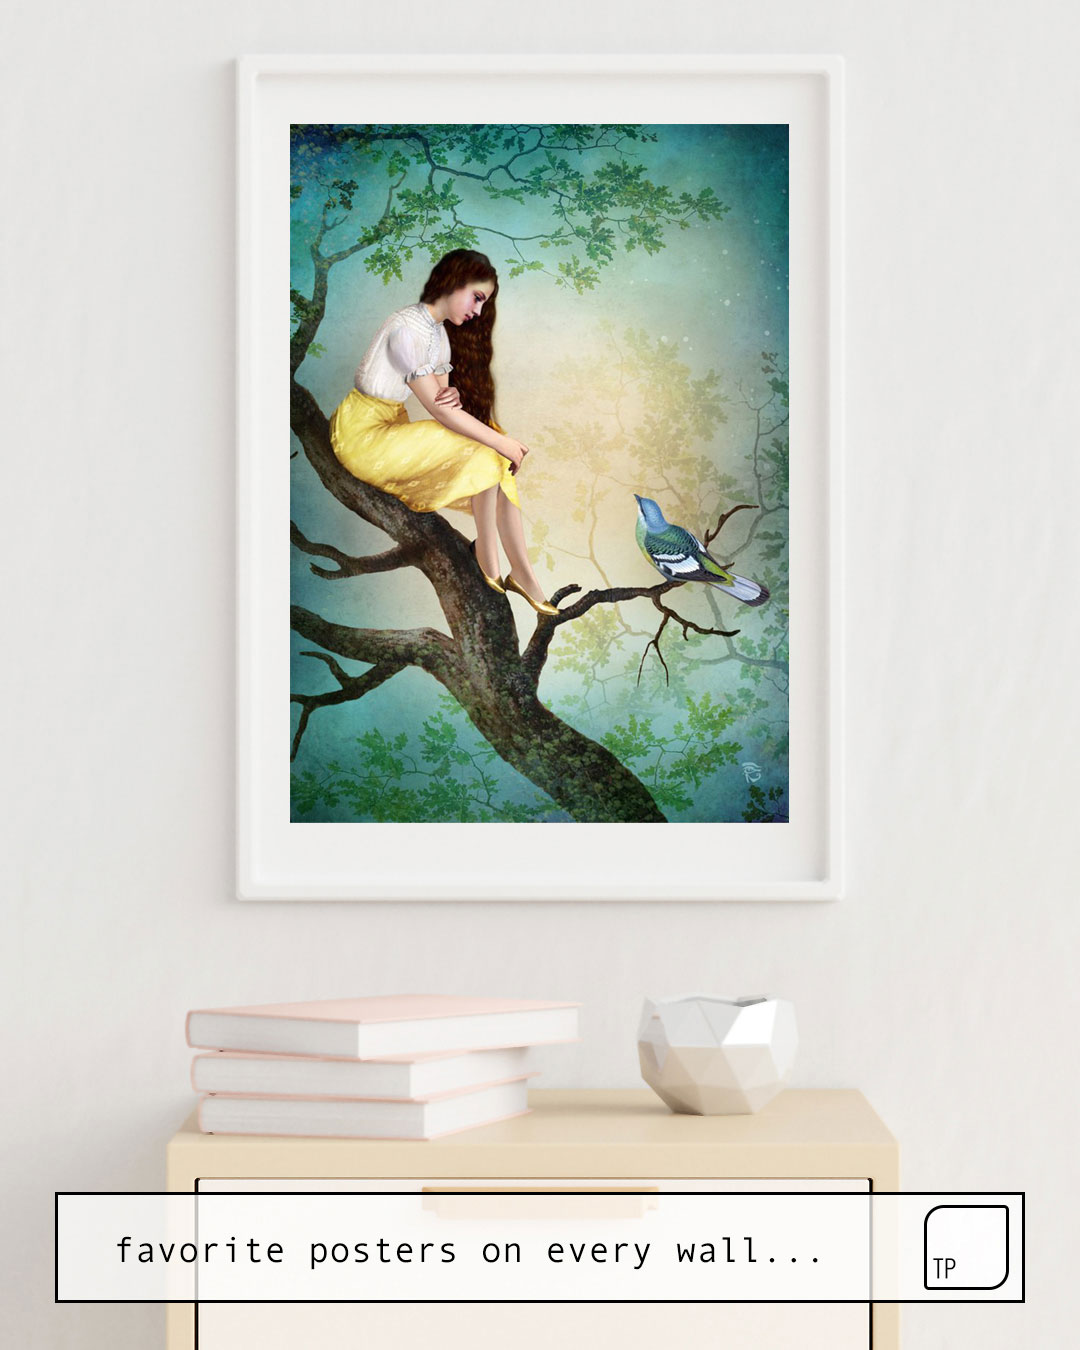 The photo shows an example of furnishing with the motif IN THE TREES by Christian Schloe as mural